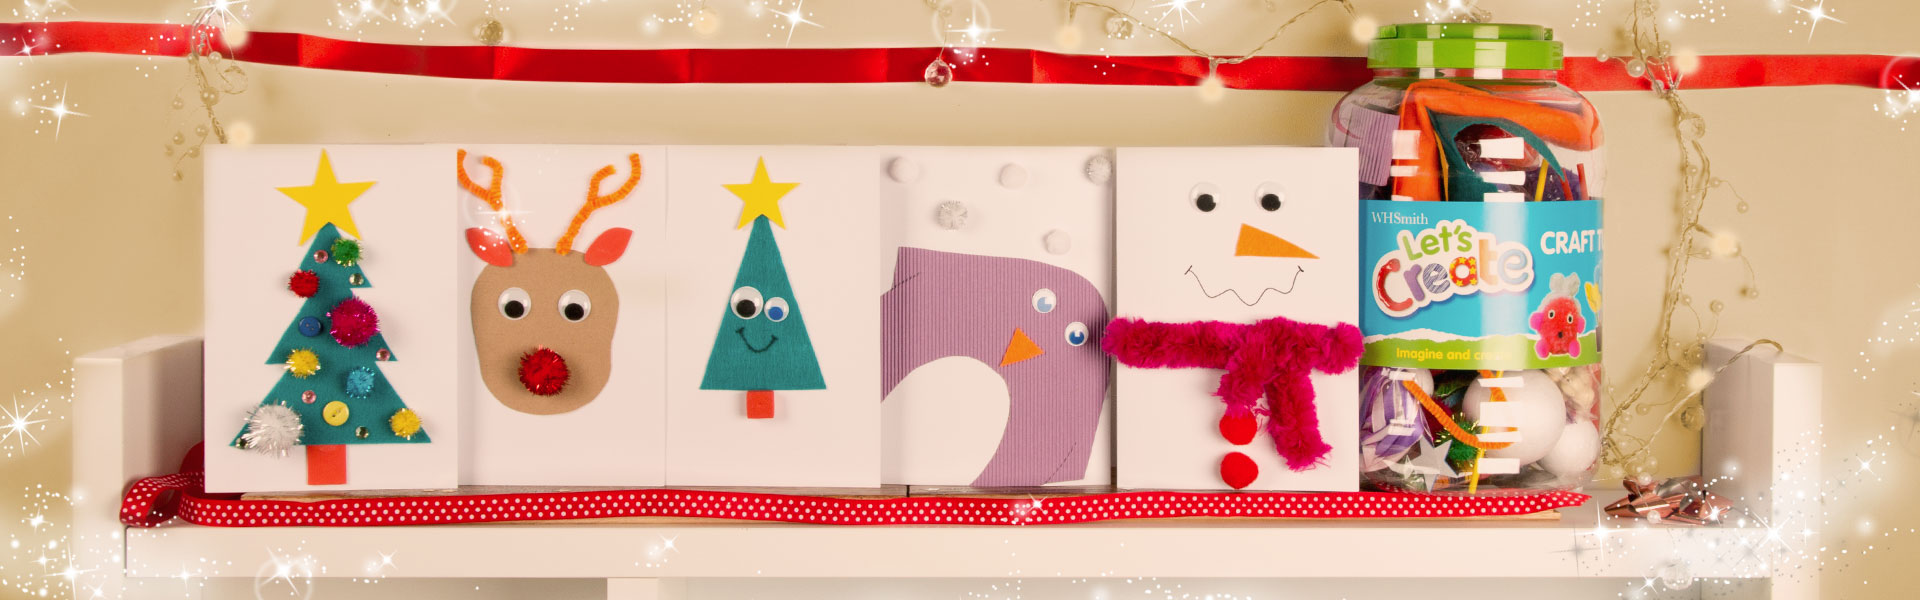 5 Easy Christmas Cards Kids Can Make With One Craft Tub - WHSmith Blog